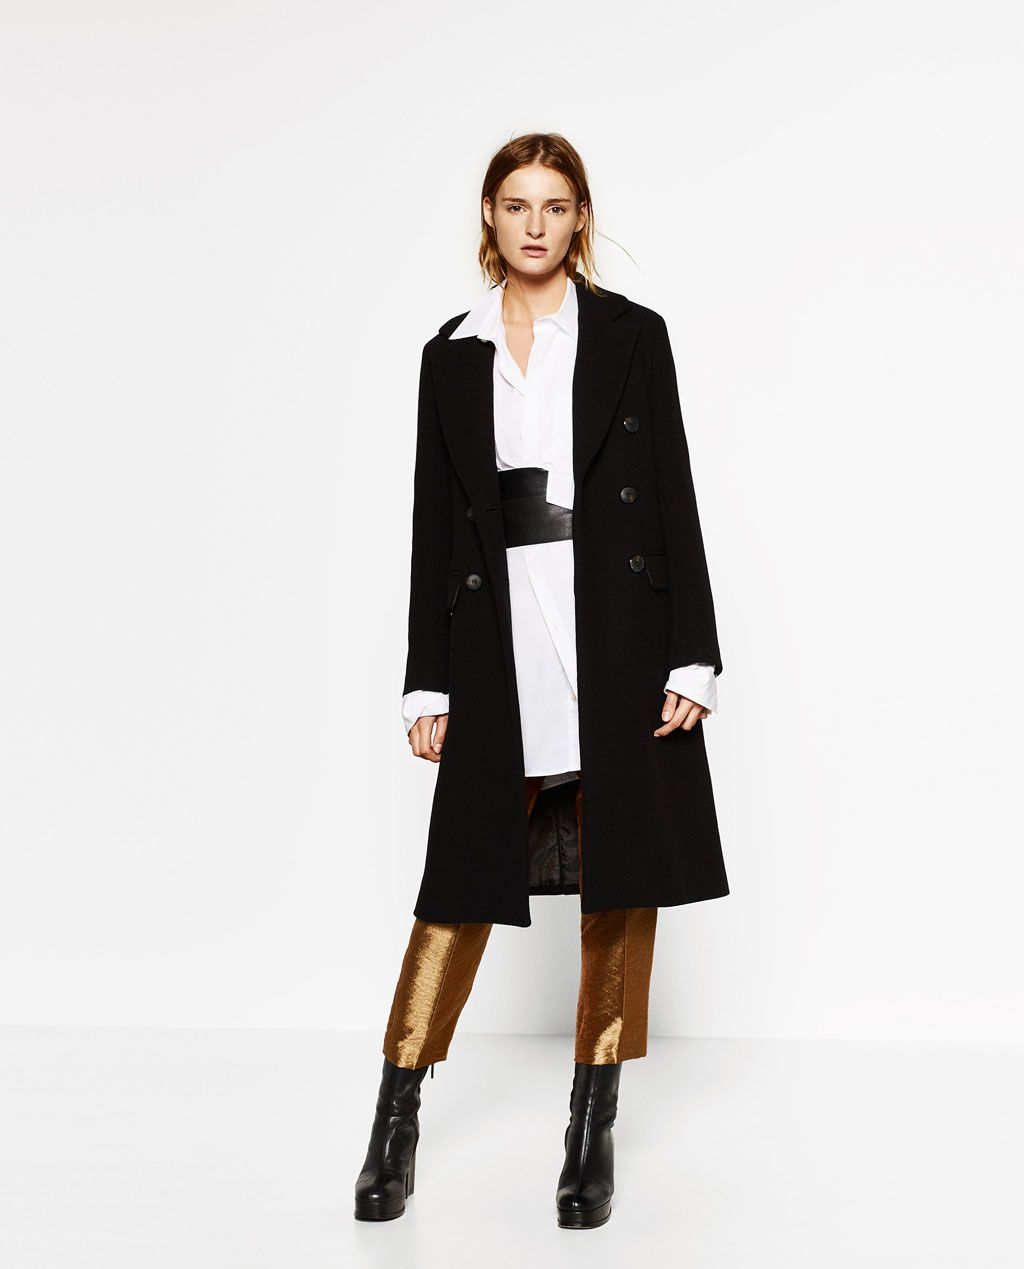 DOUBLE BREASTED WOOL COAT - NEW IN-WOMAN | ZARA United States ...